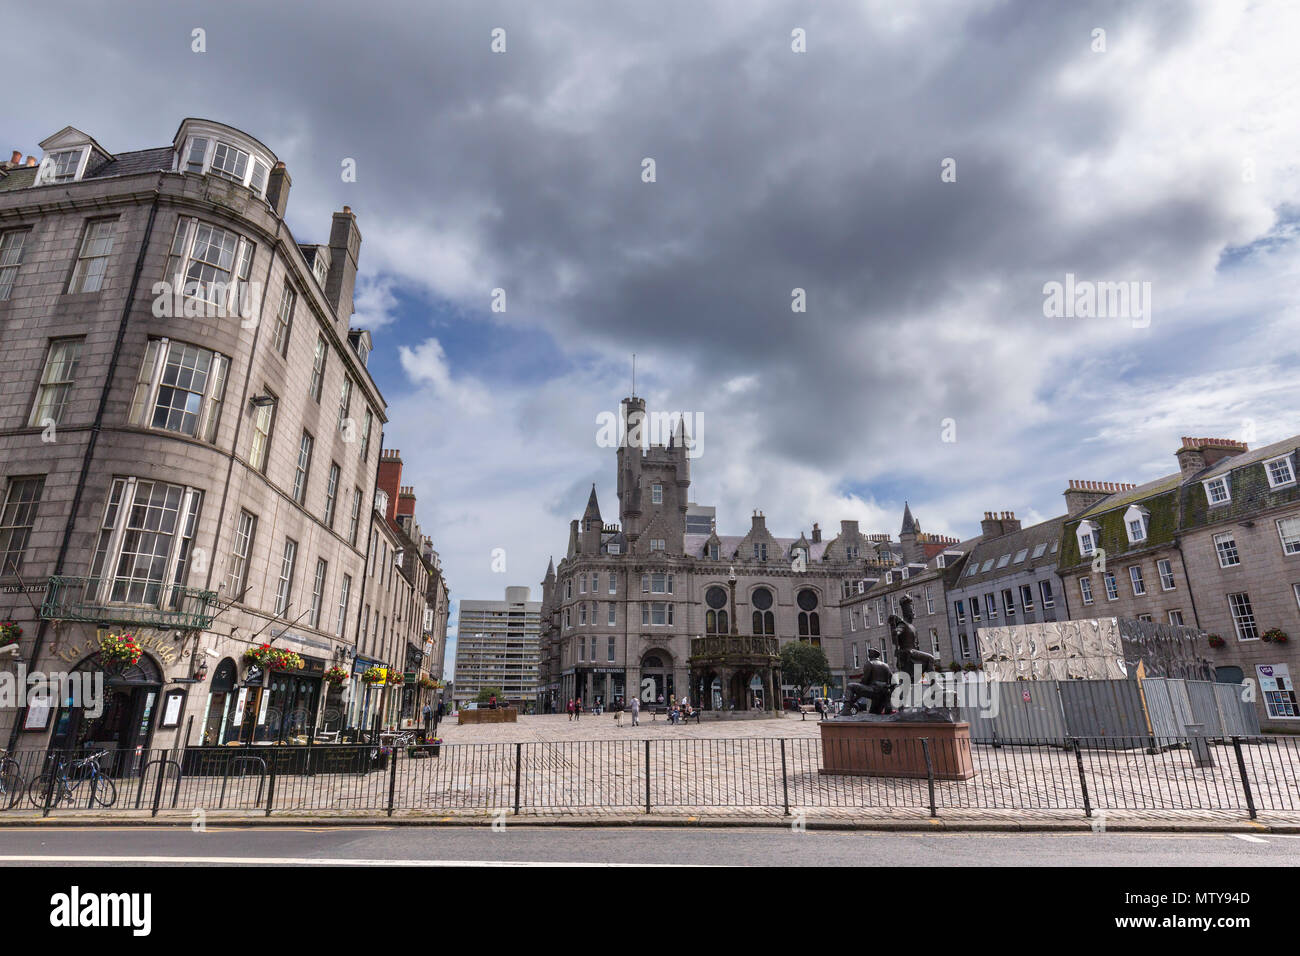 ABERDEEN, UNITED KINGDOM - AUGUST 3: View of the Mercat Cross, Gordon Highlanders statue and Salvation Army Church in the city of Aberdeen, United Kin Stock Photo